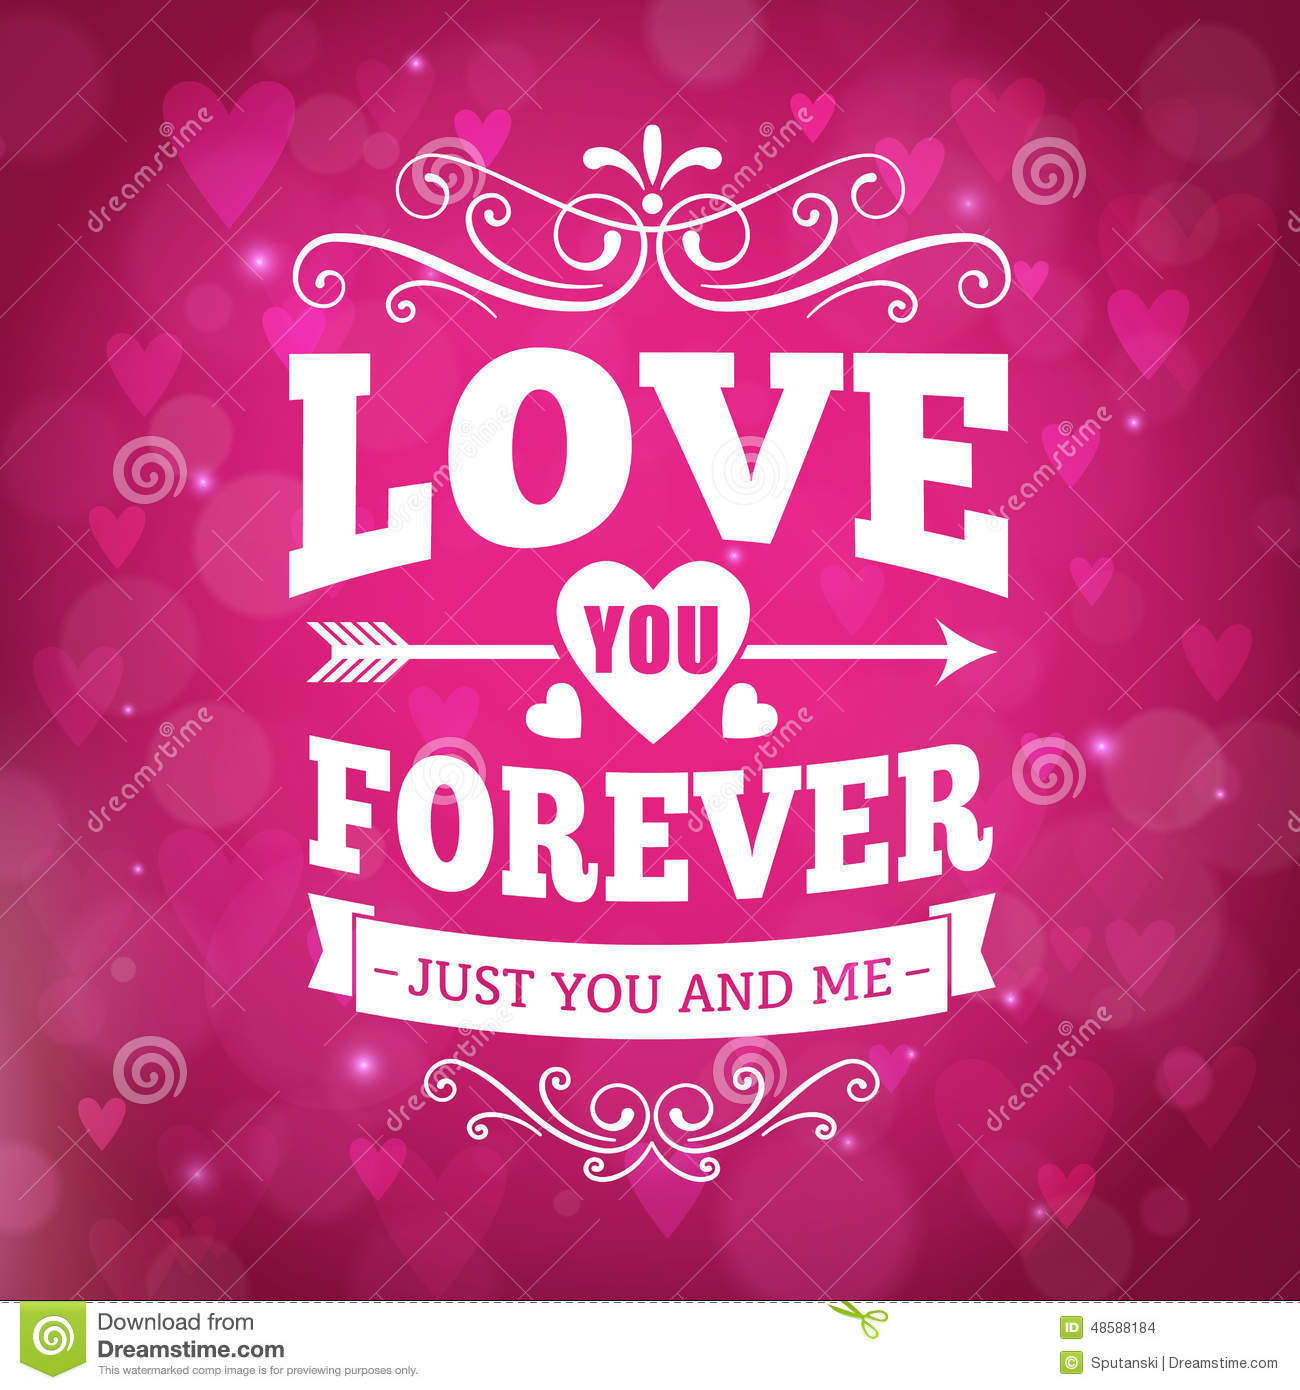 I Love You Forever Hd Pics Wallpaper sportstle